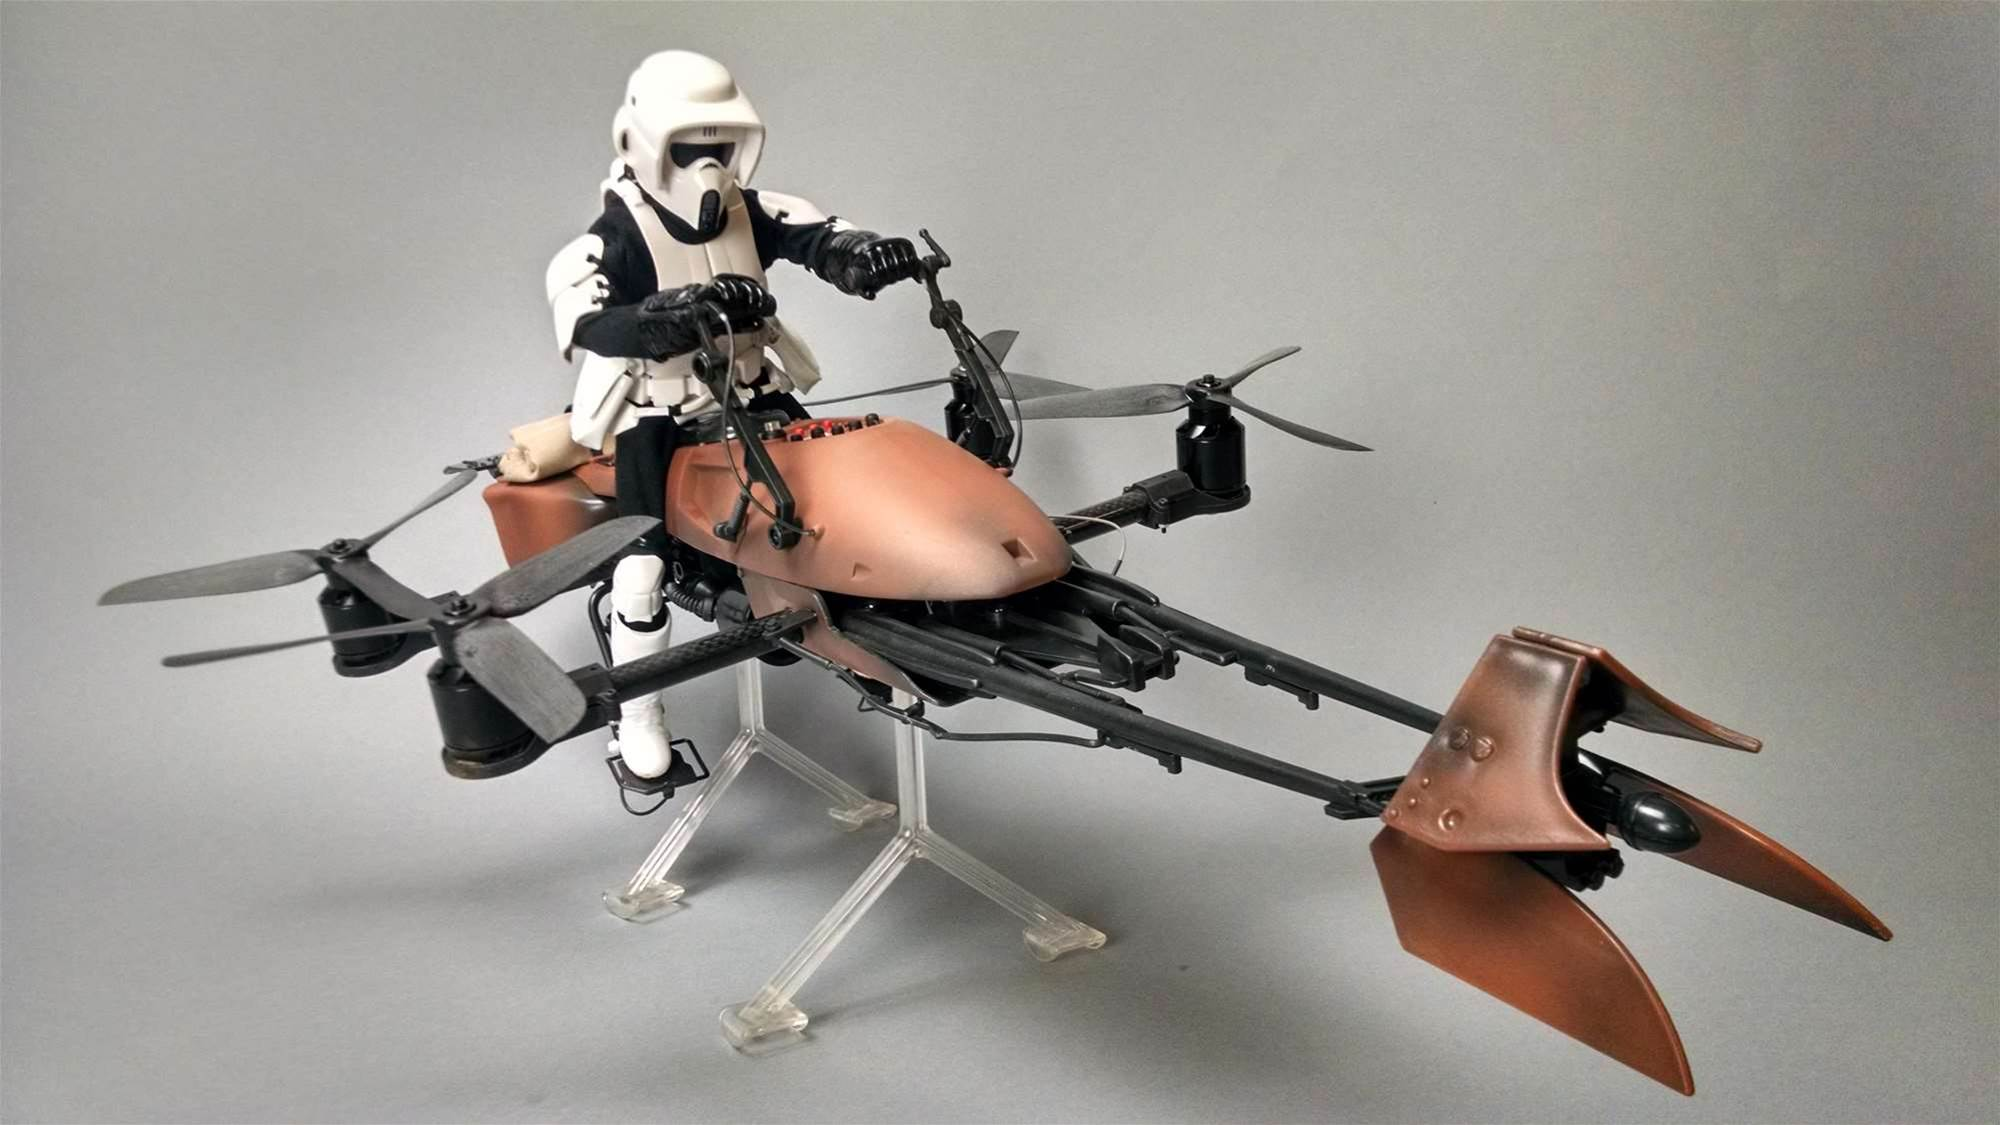 Star Wars Toy Converted Into Working Speeder Bike Drone